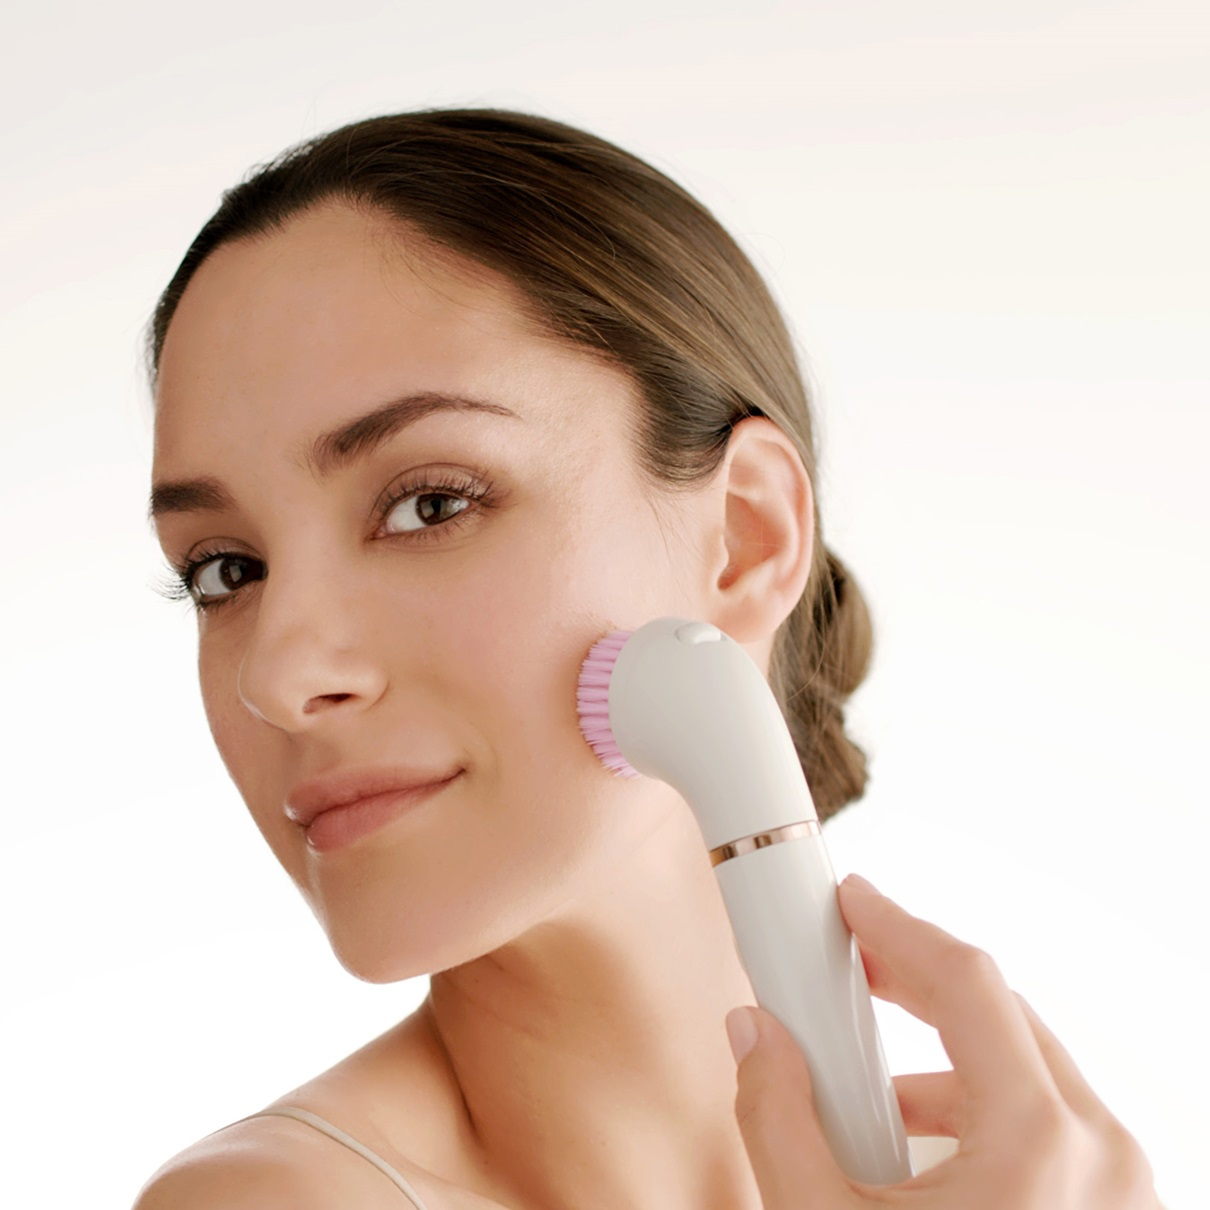 Braun FaceSpa Pro 912 - in use